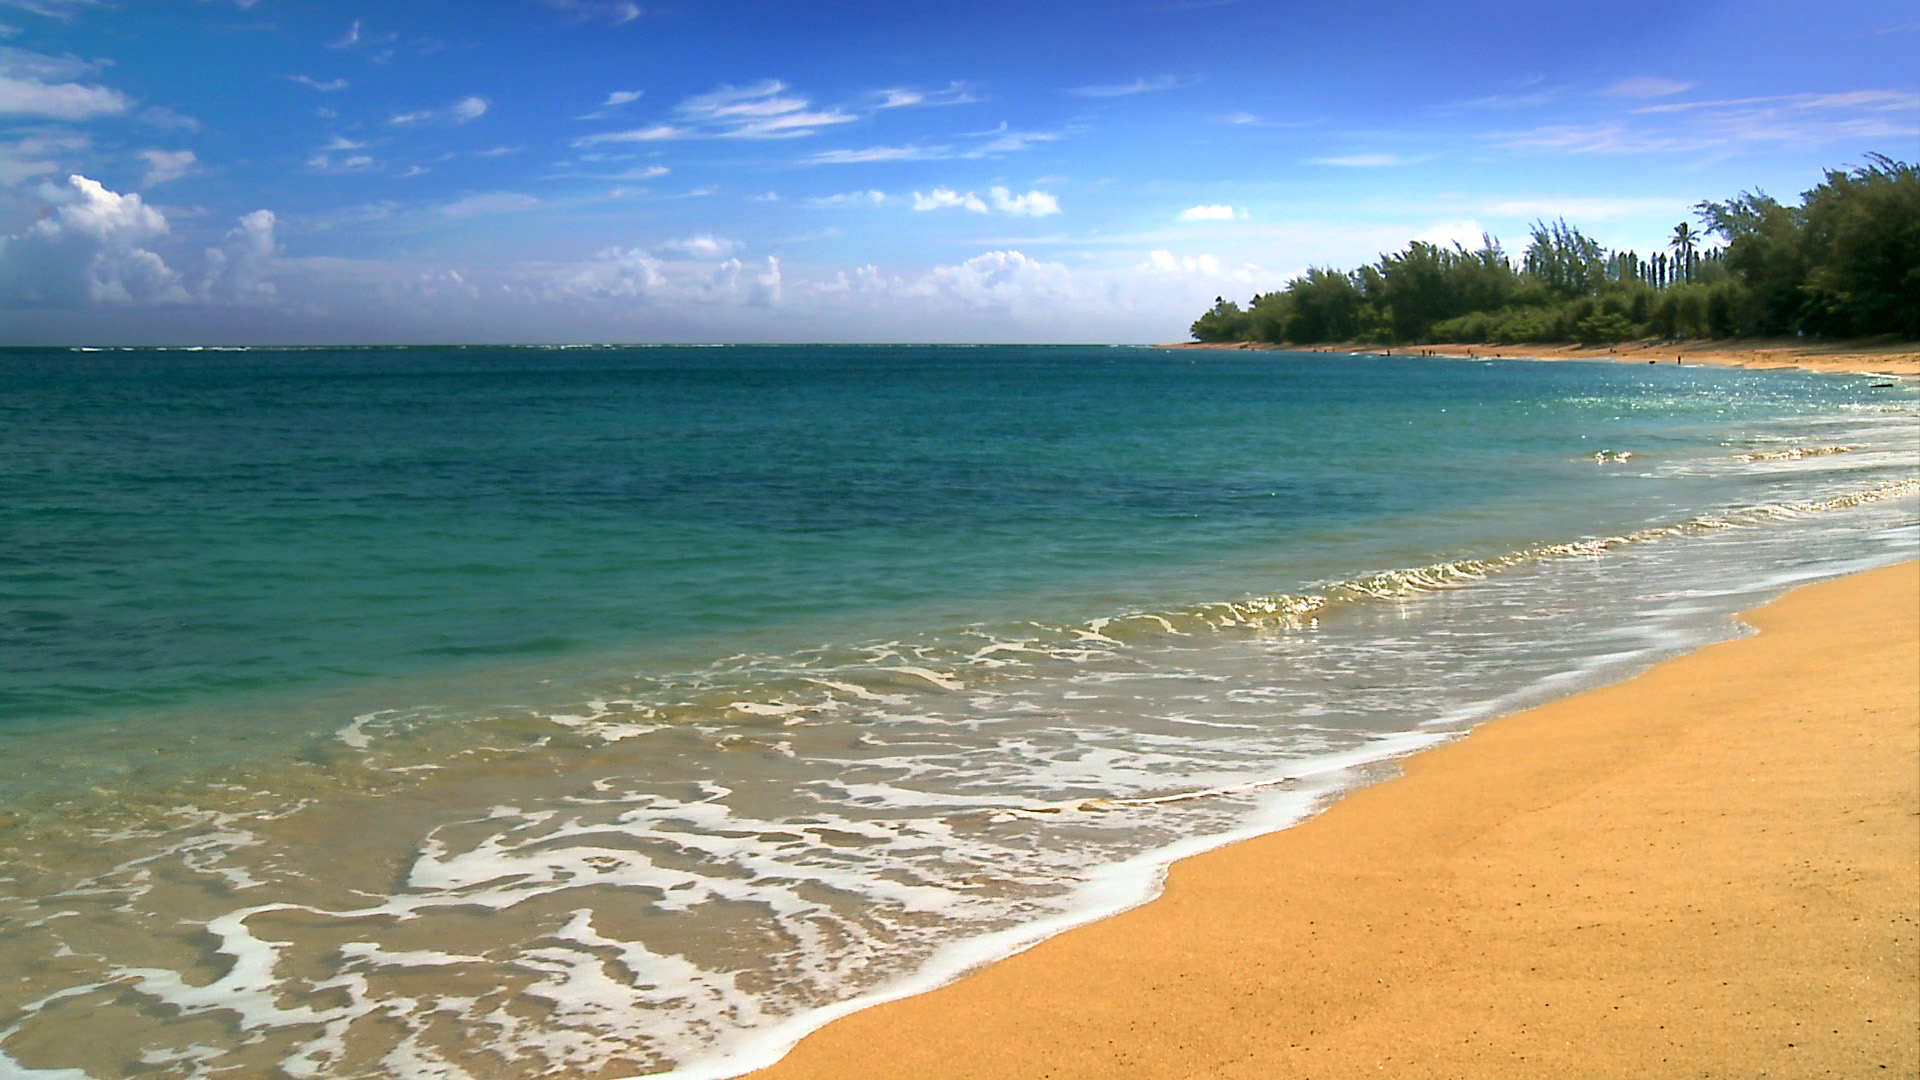 beach wallpapers hawaii beach hd wallpapers hawaii beach hd wallpapers 1920x1080